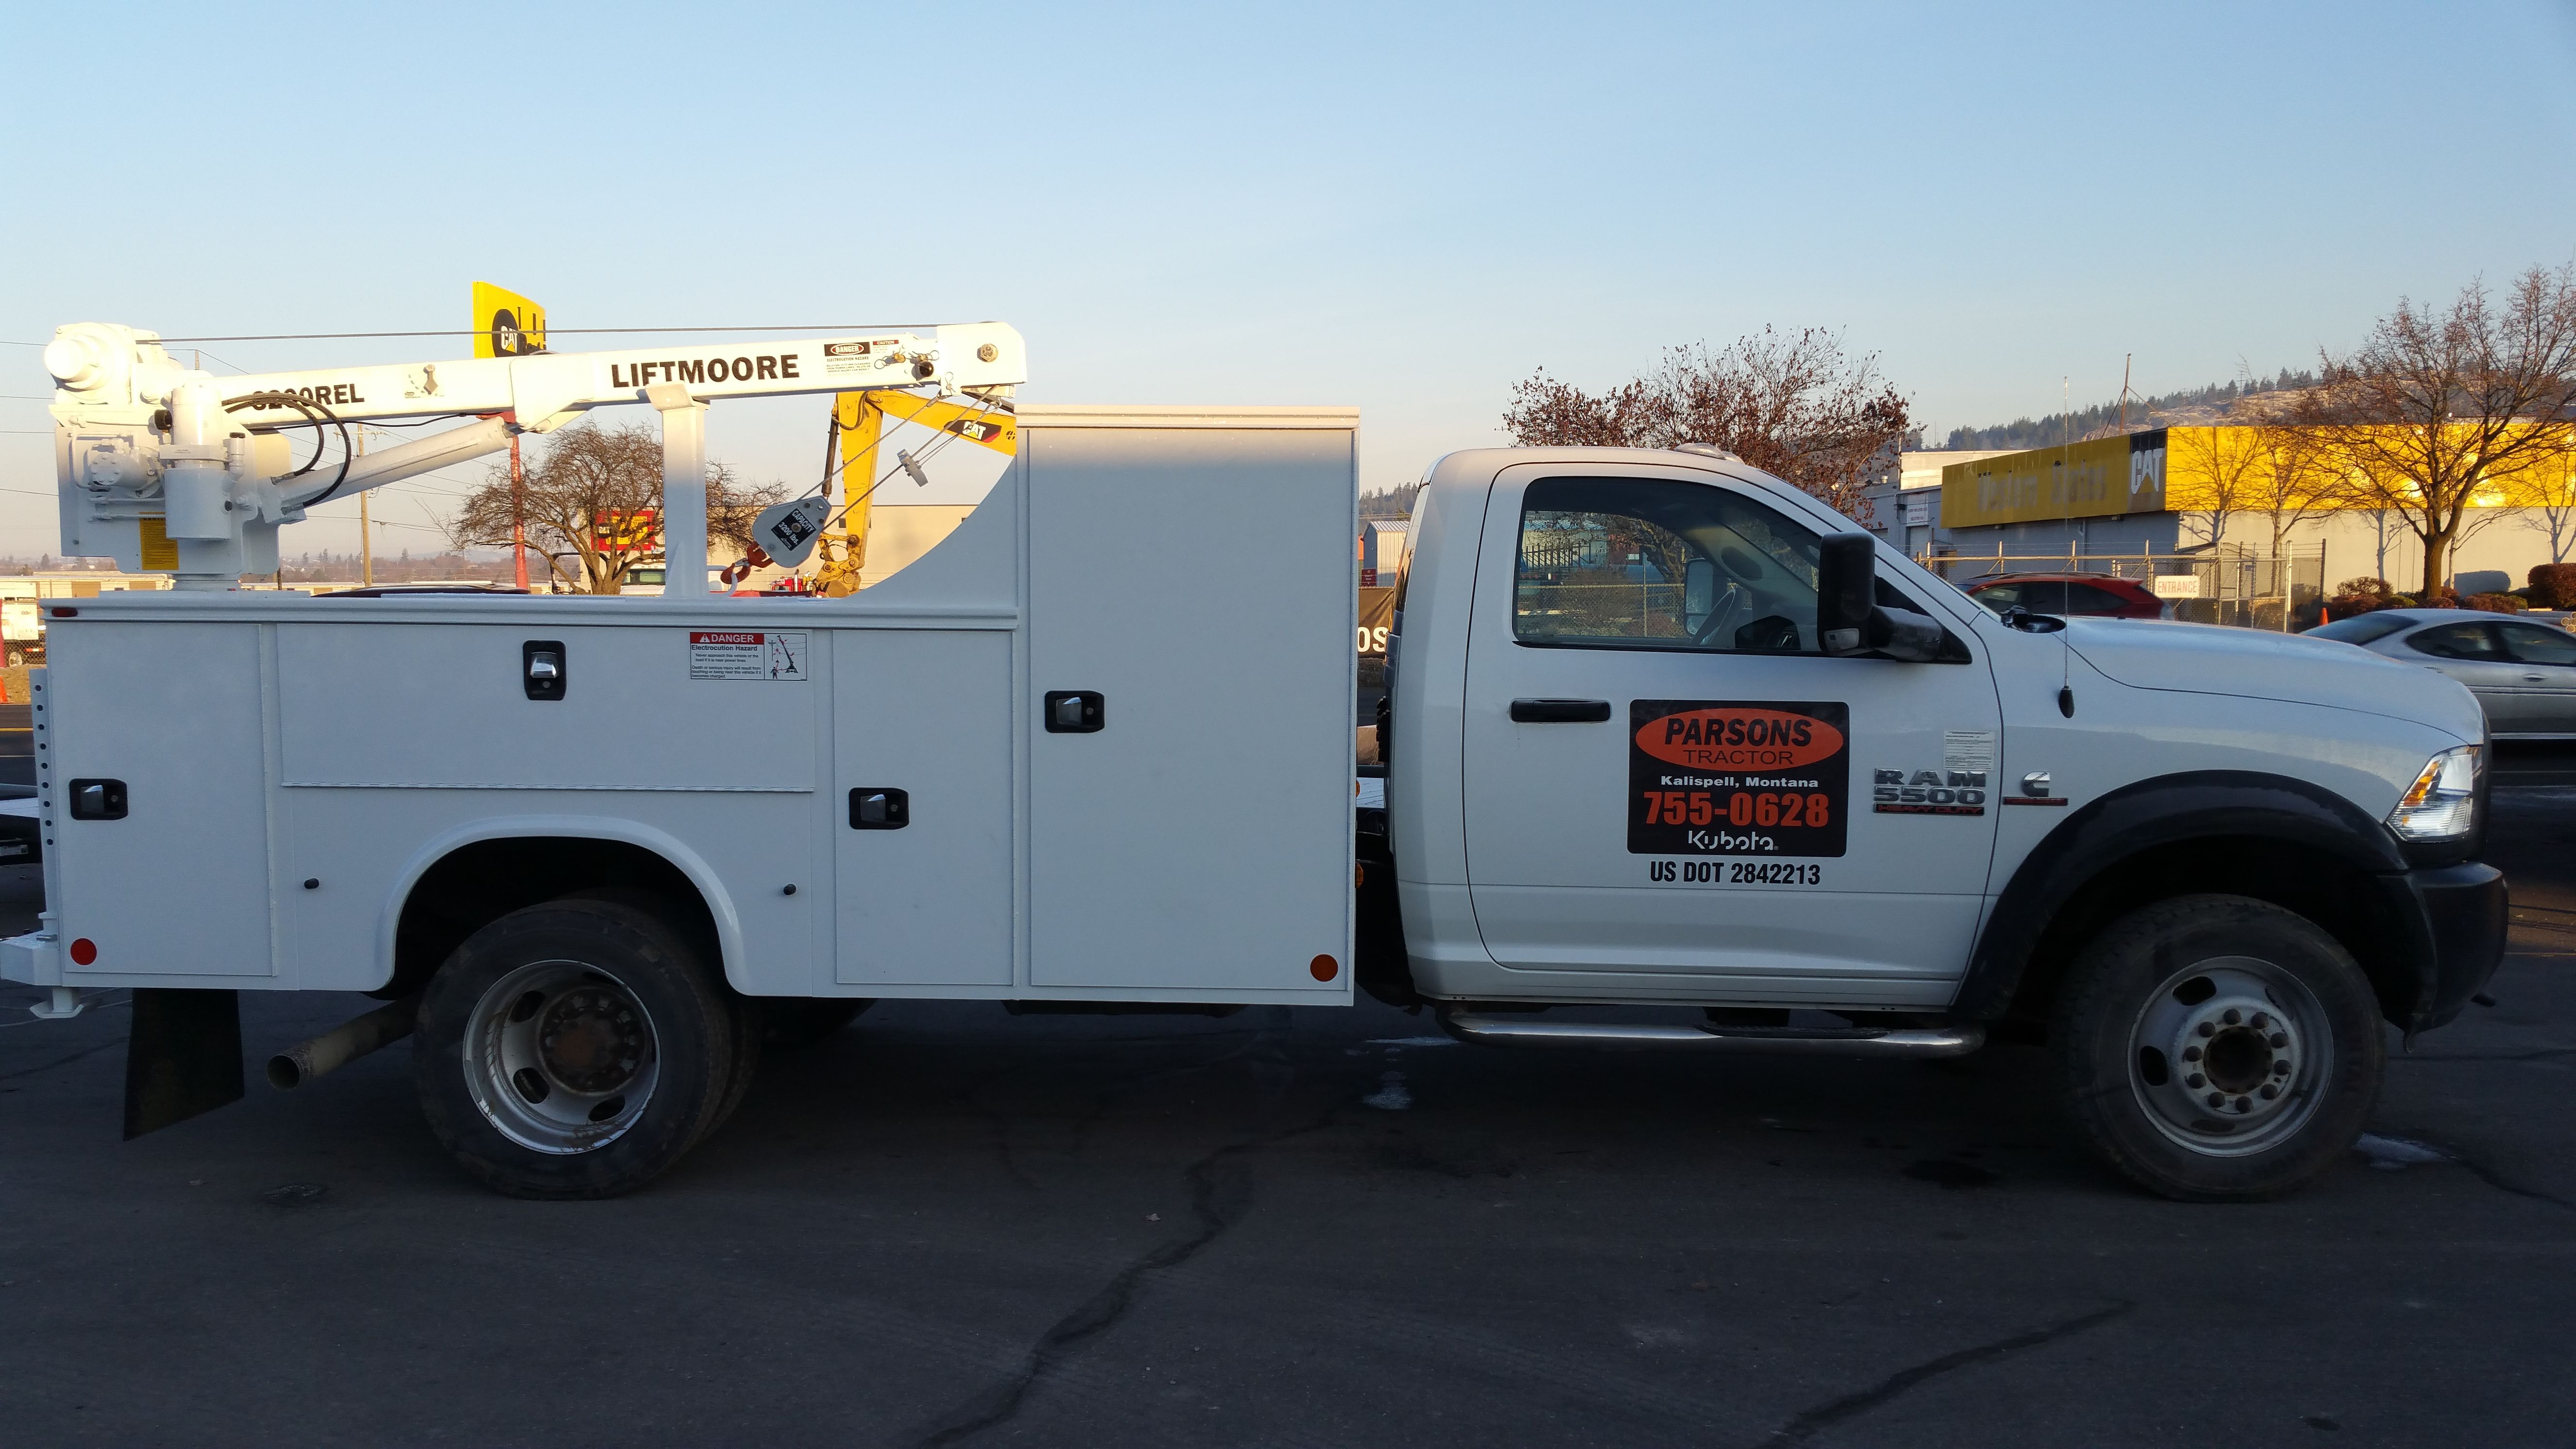 This Knapheide service body just came out of our Spokane